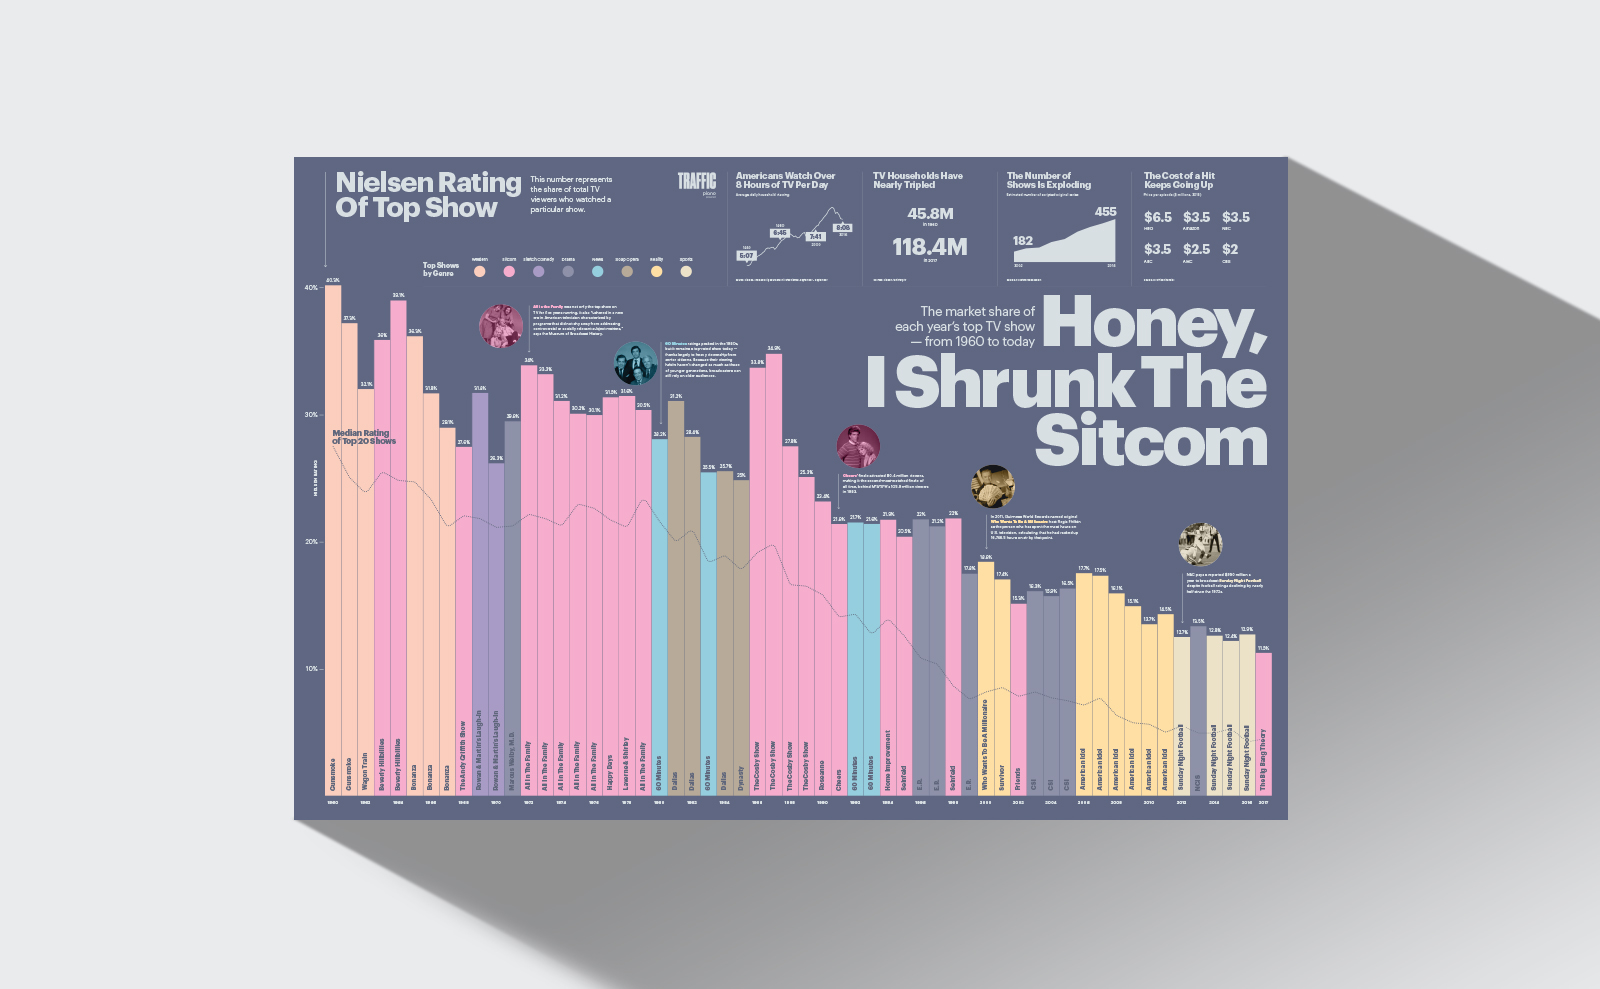 Honey I shrunk the sitcom Nielsen Rating of Top Shows Traffic magazine poster detail